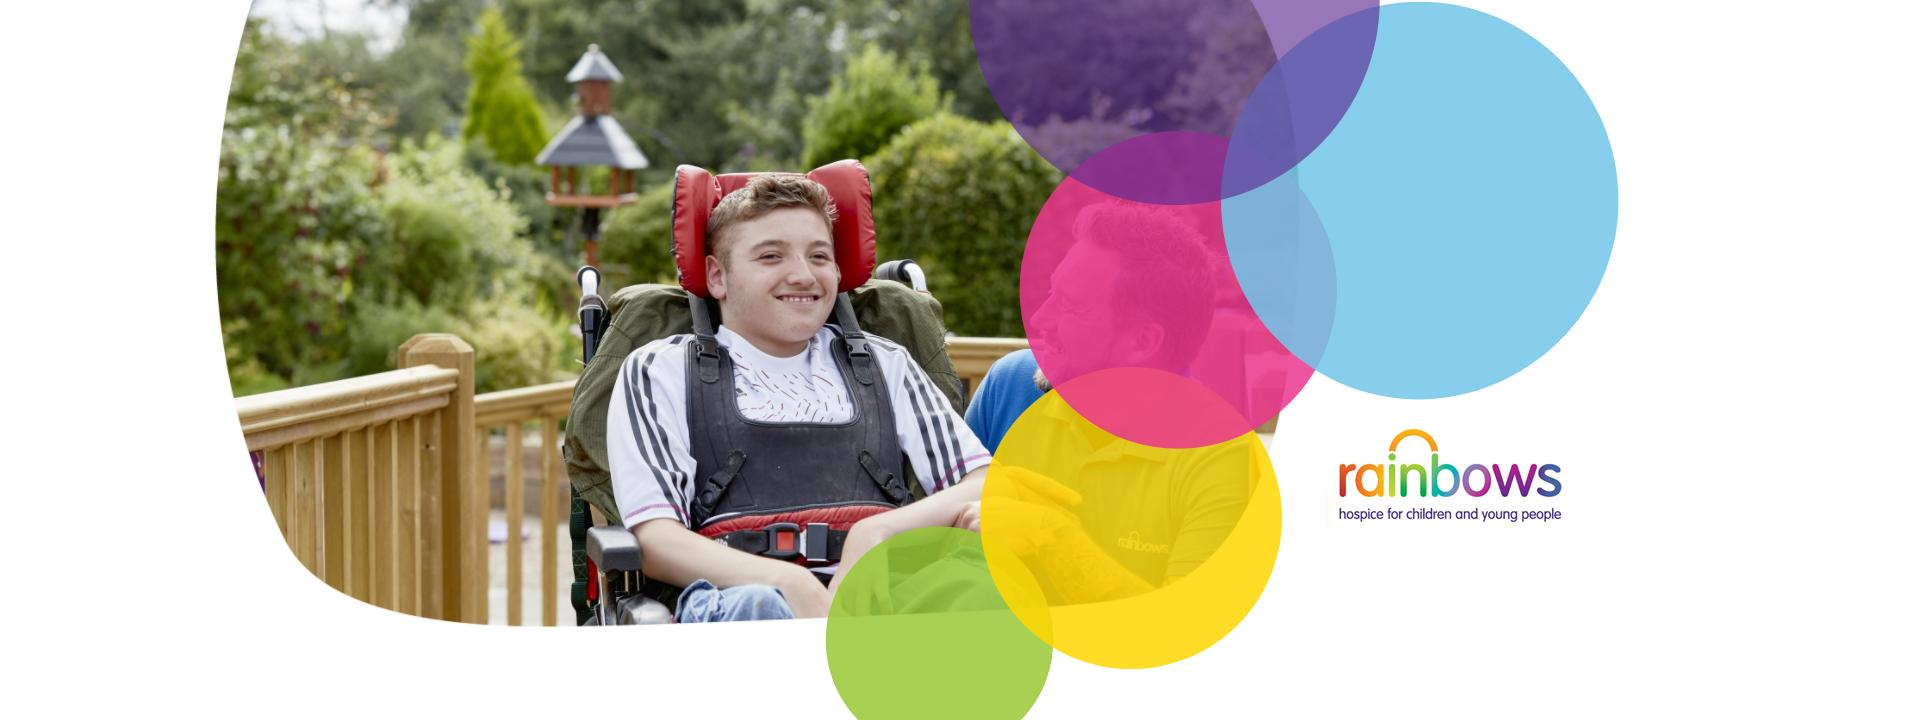 Rainbows hospice for children and young people.